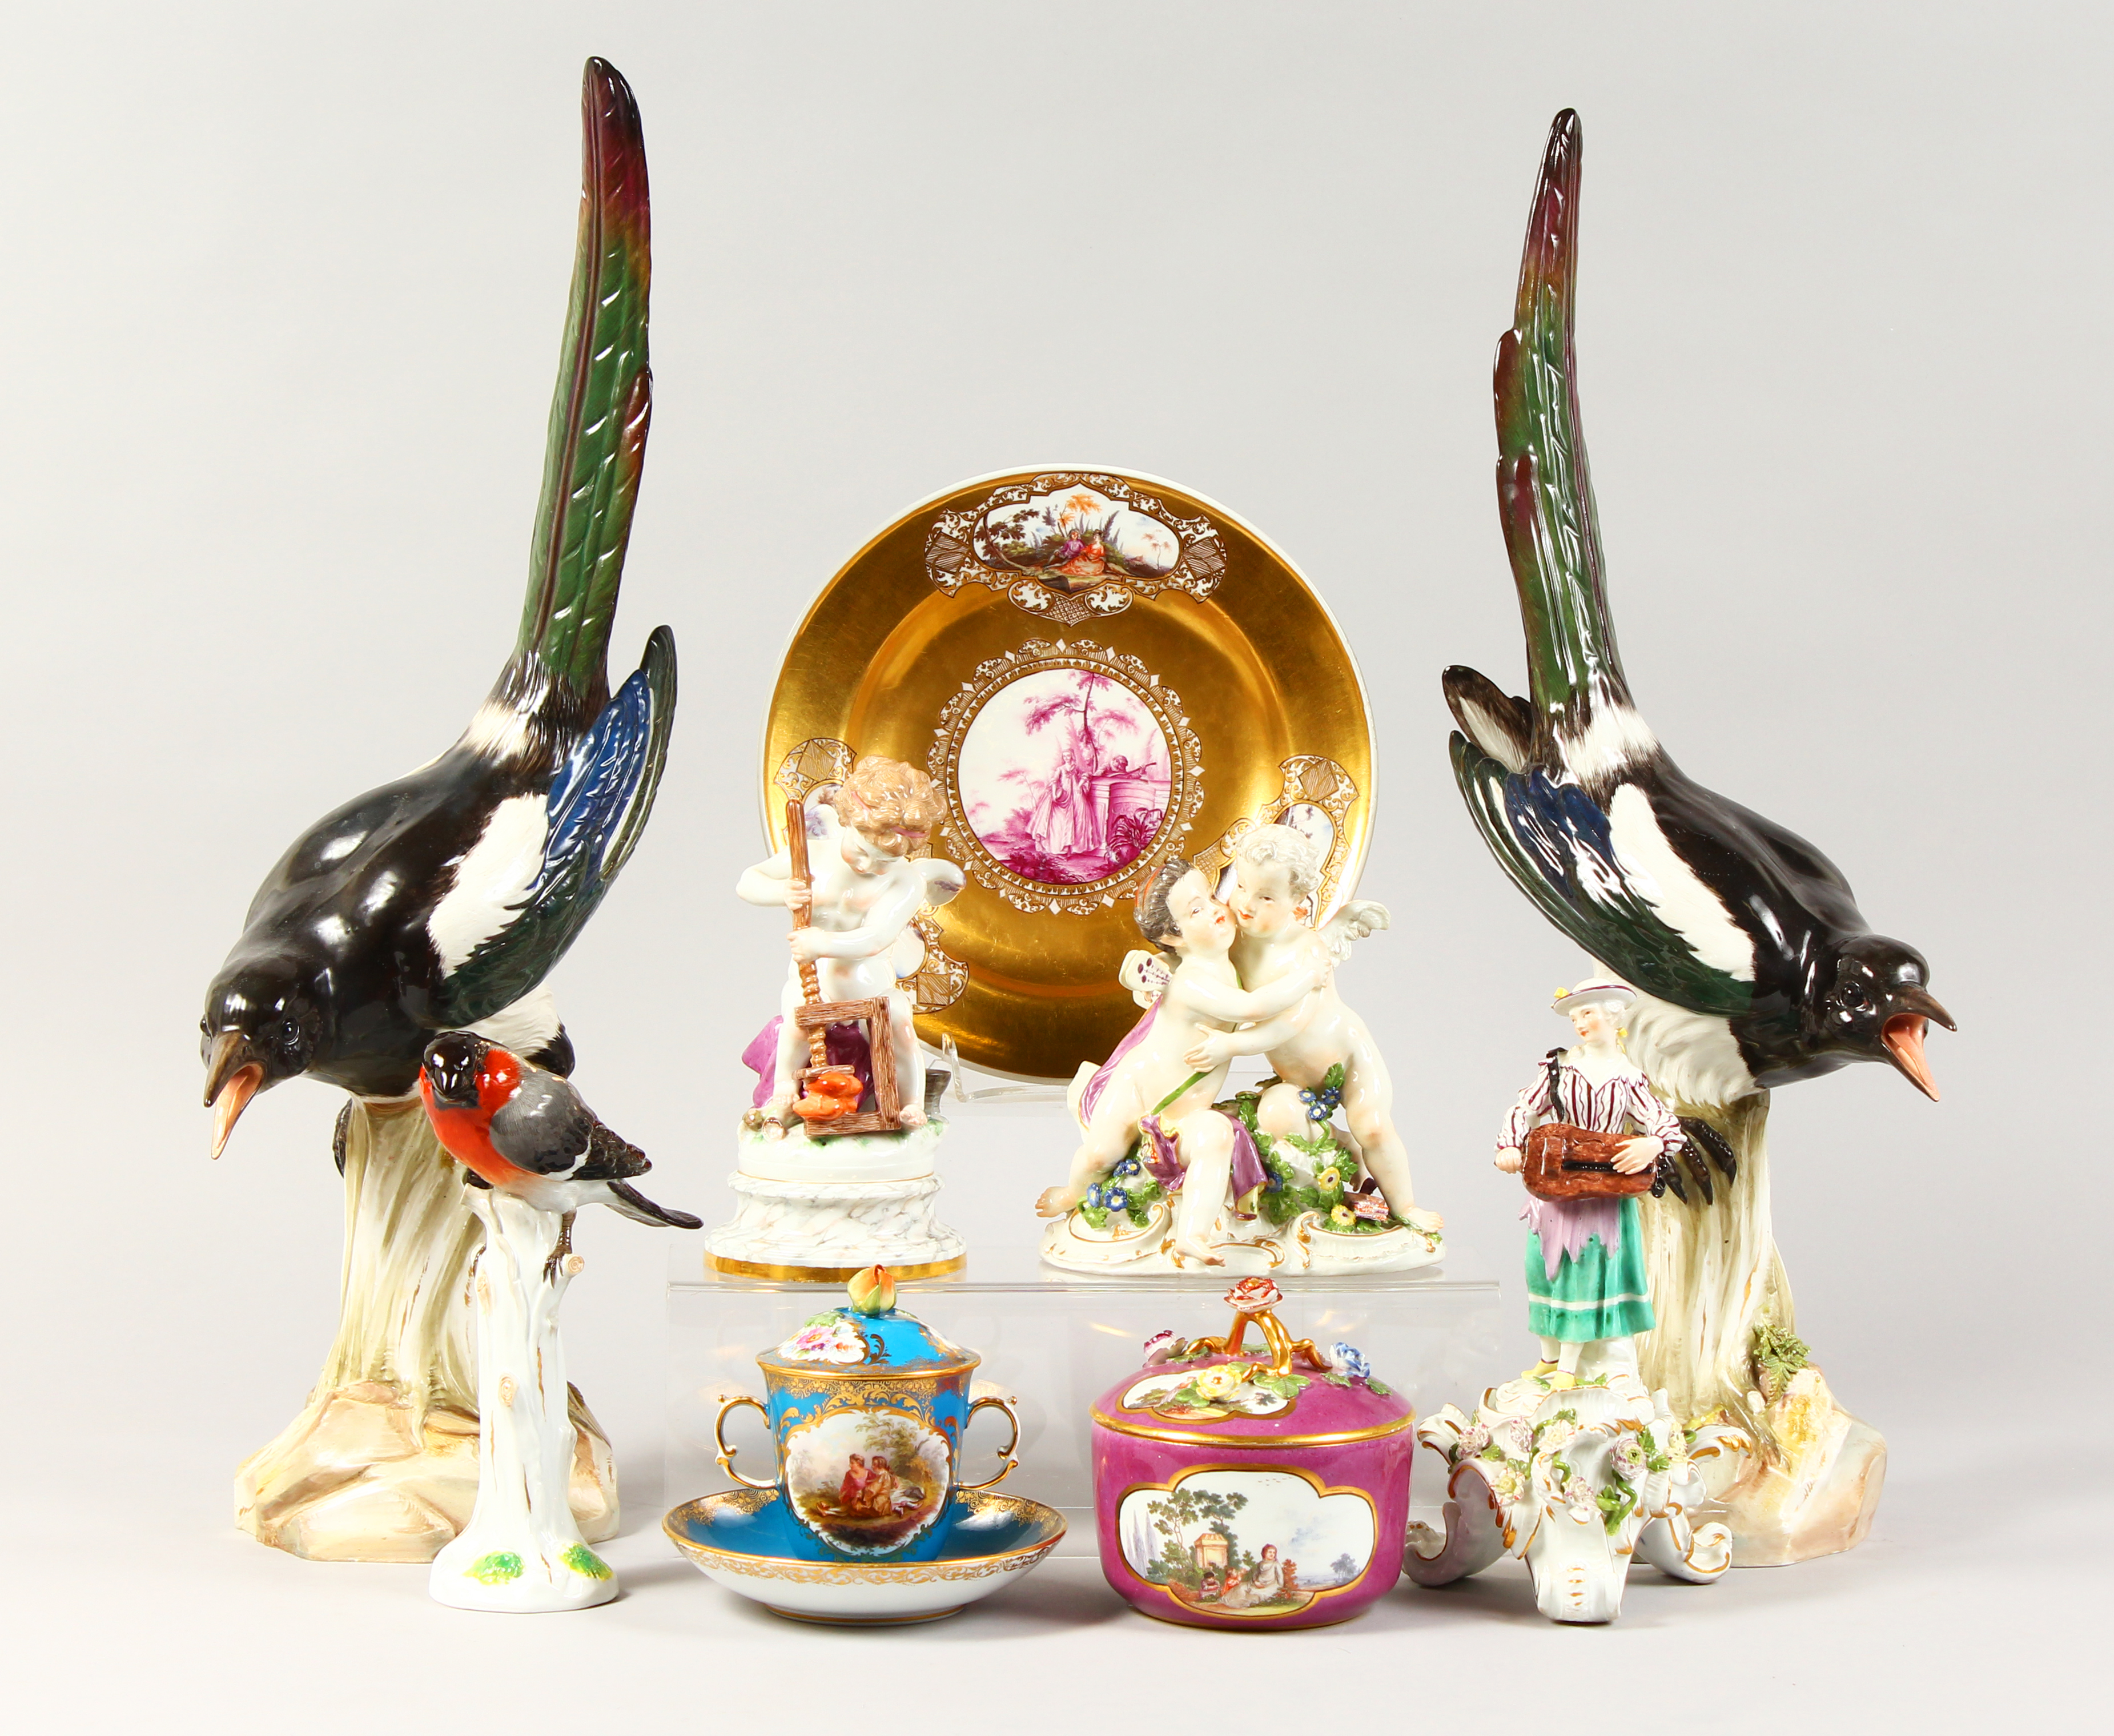 Part of a gentleman's collection of 18th-19th century Meissen porcelain./Auctioneers and Valuers